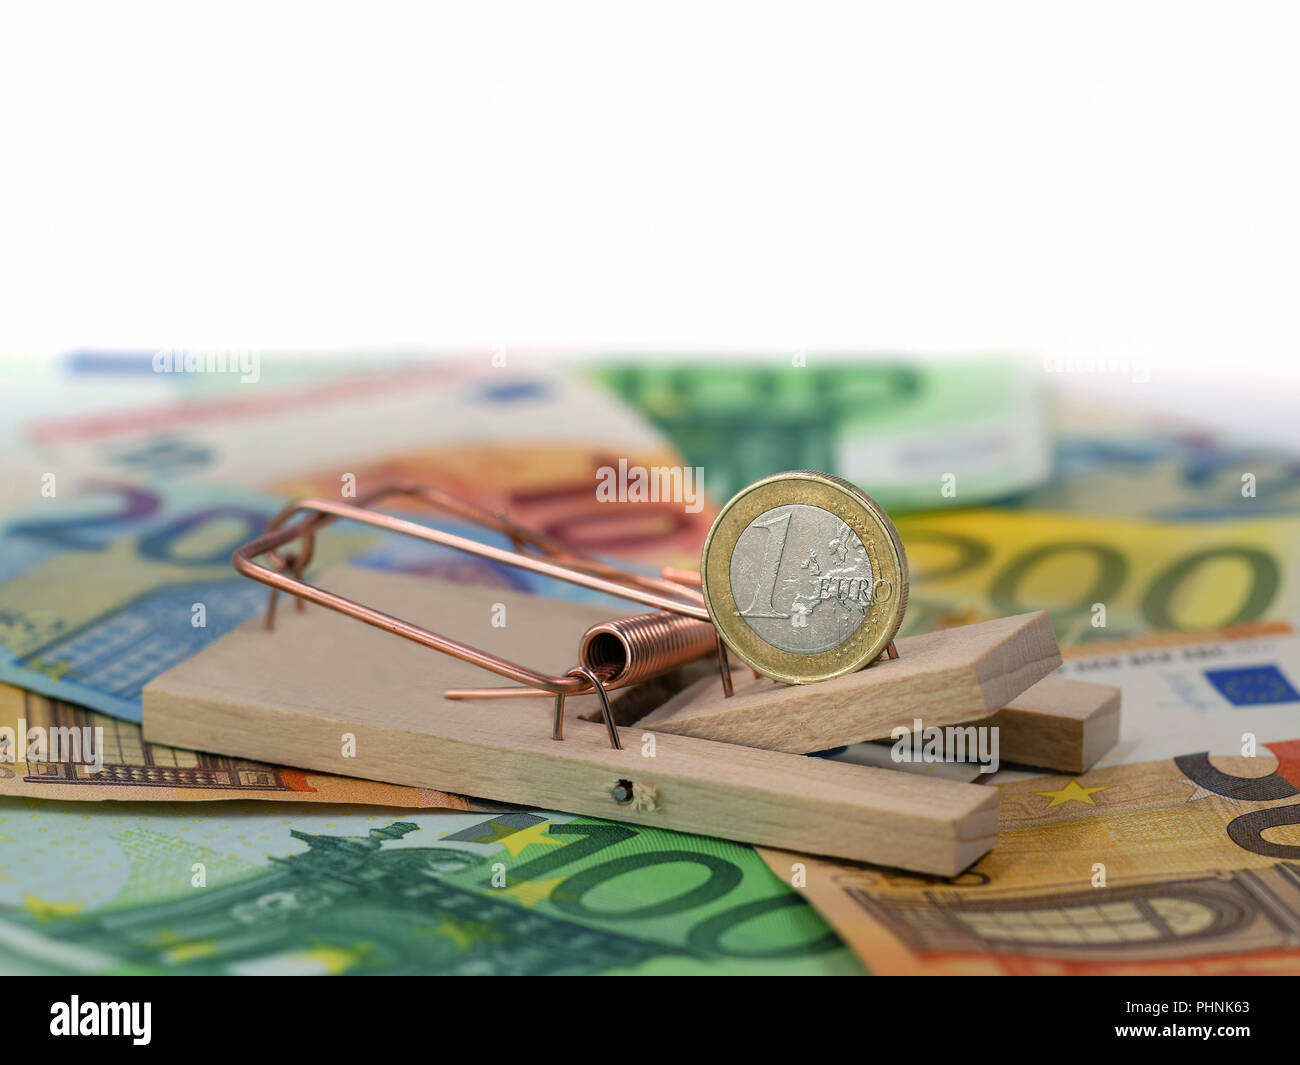 close up of euro coin in mousetrap as bait on banknotes with copy space. concept of debt - Stock Image